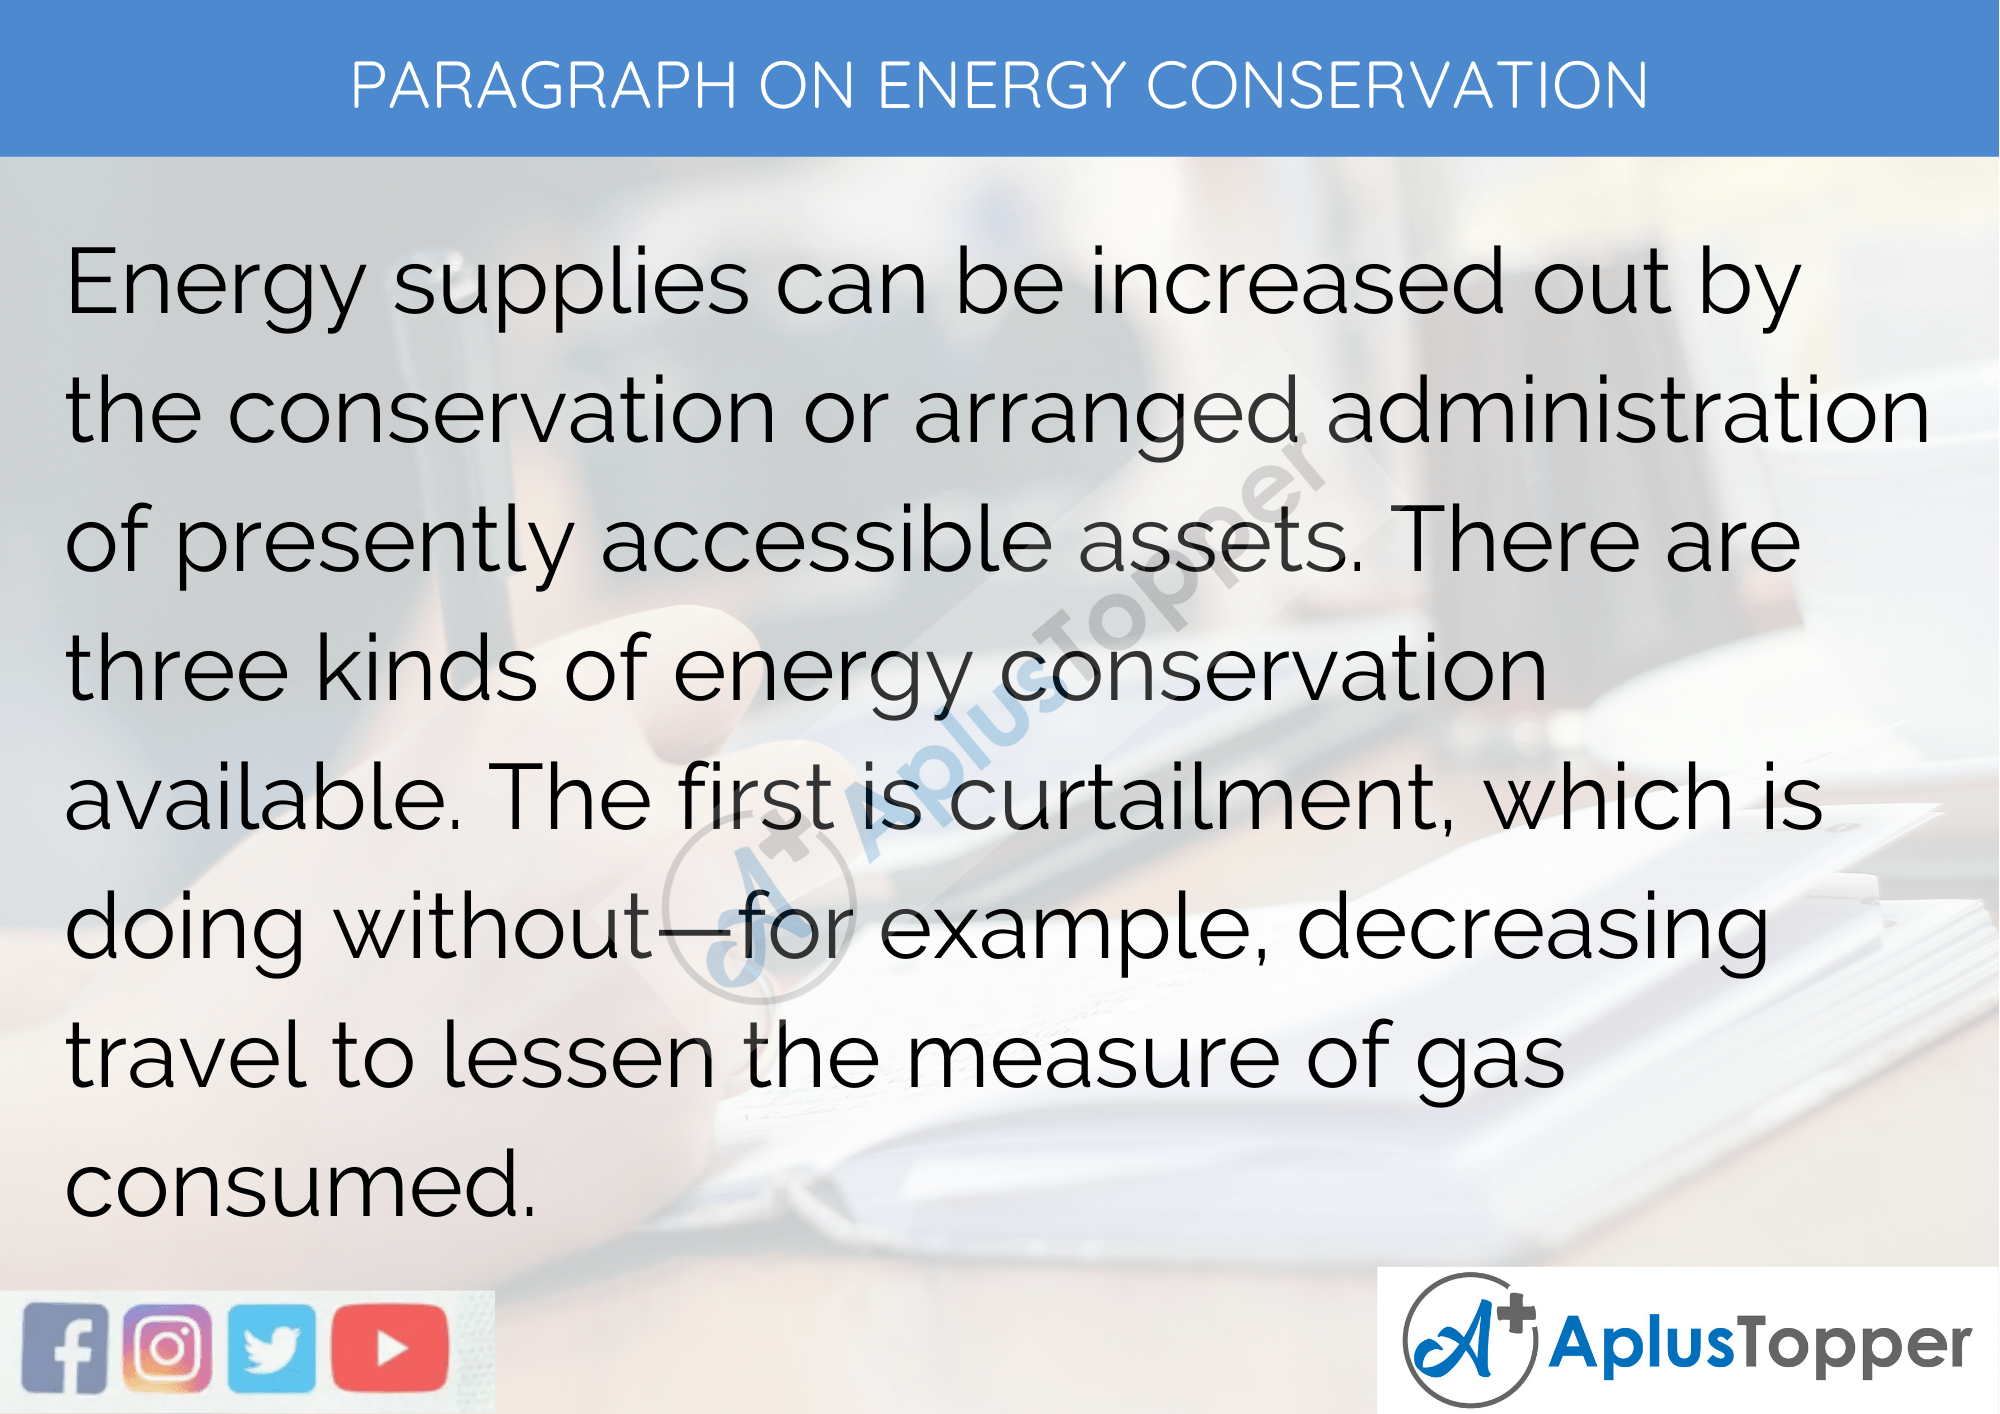 Paragraph On Energy Conservation - 100 Words for Classes 1, 2, 3 Kids